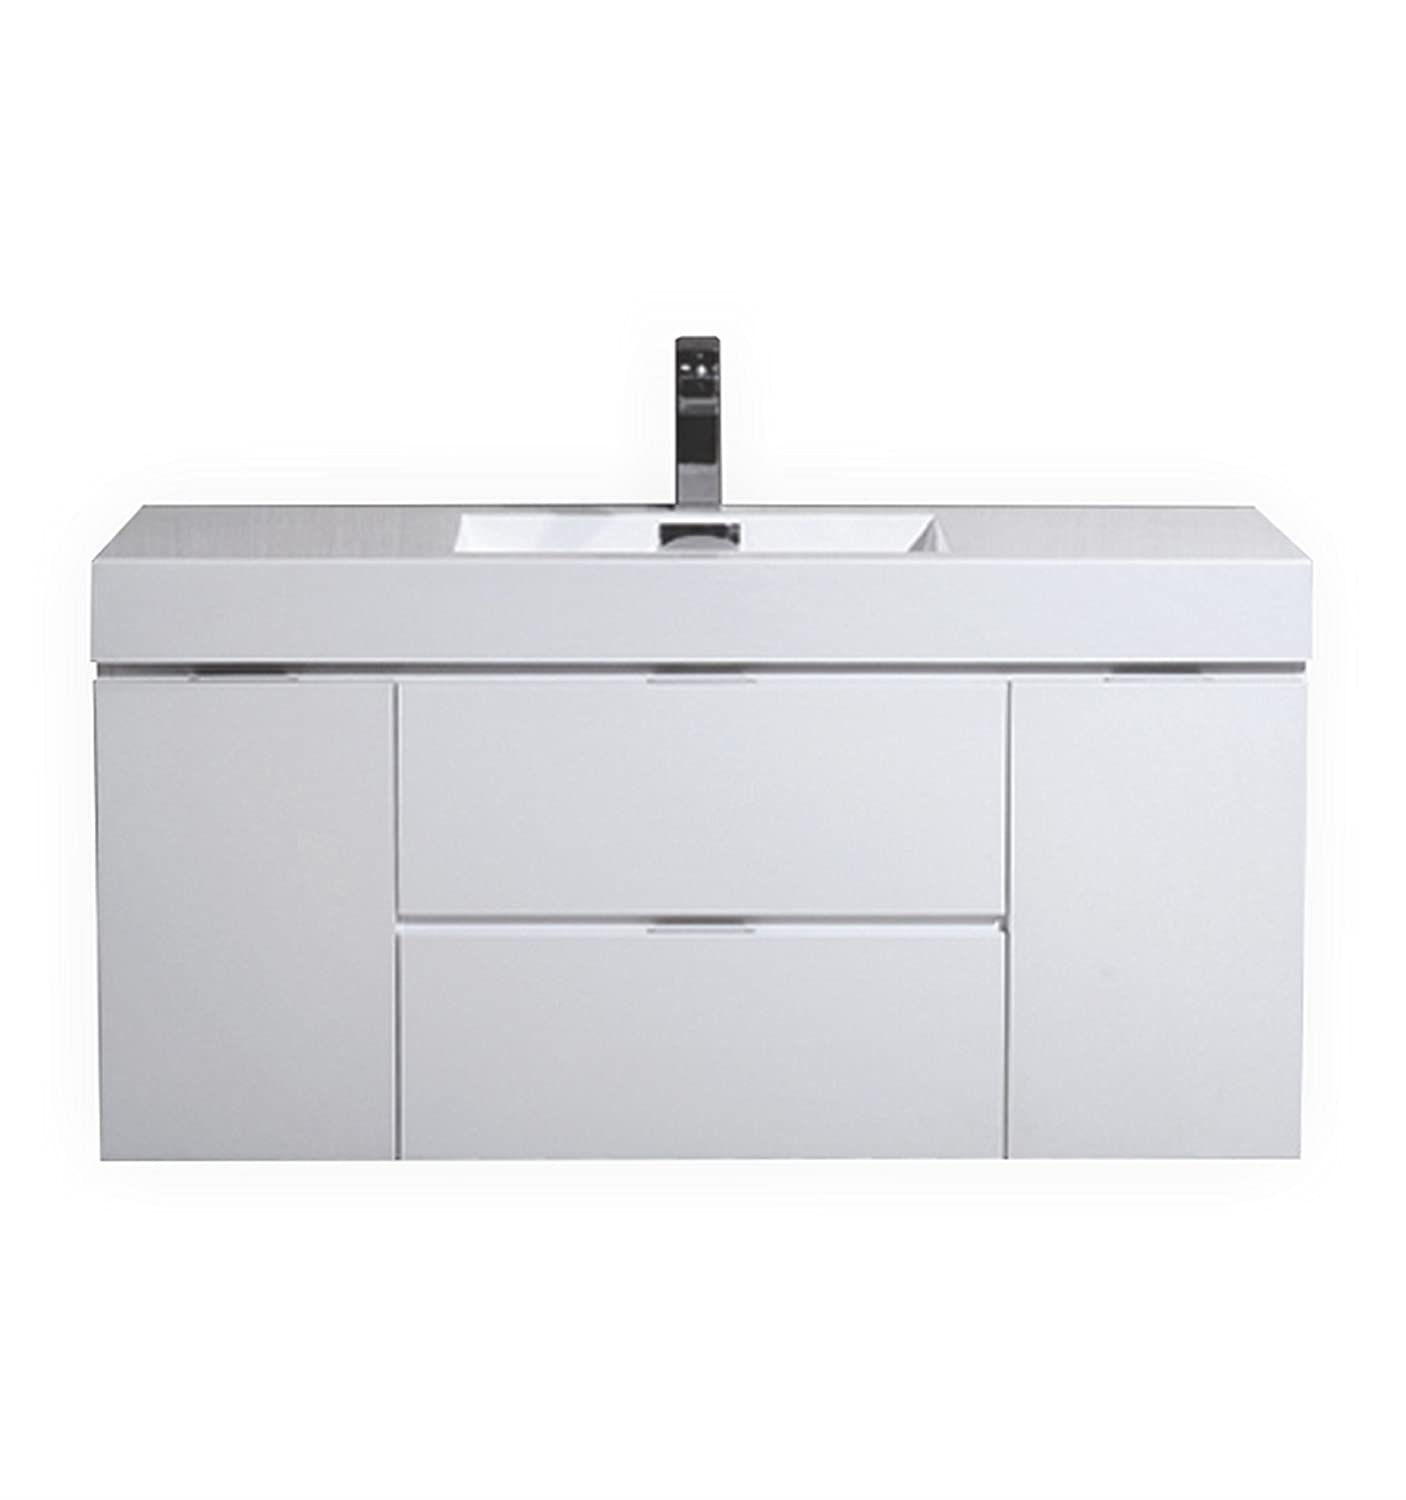 Kube Bath Bliss 48 High Gloss White Wall Mount Modern Bathroom